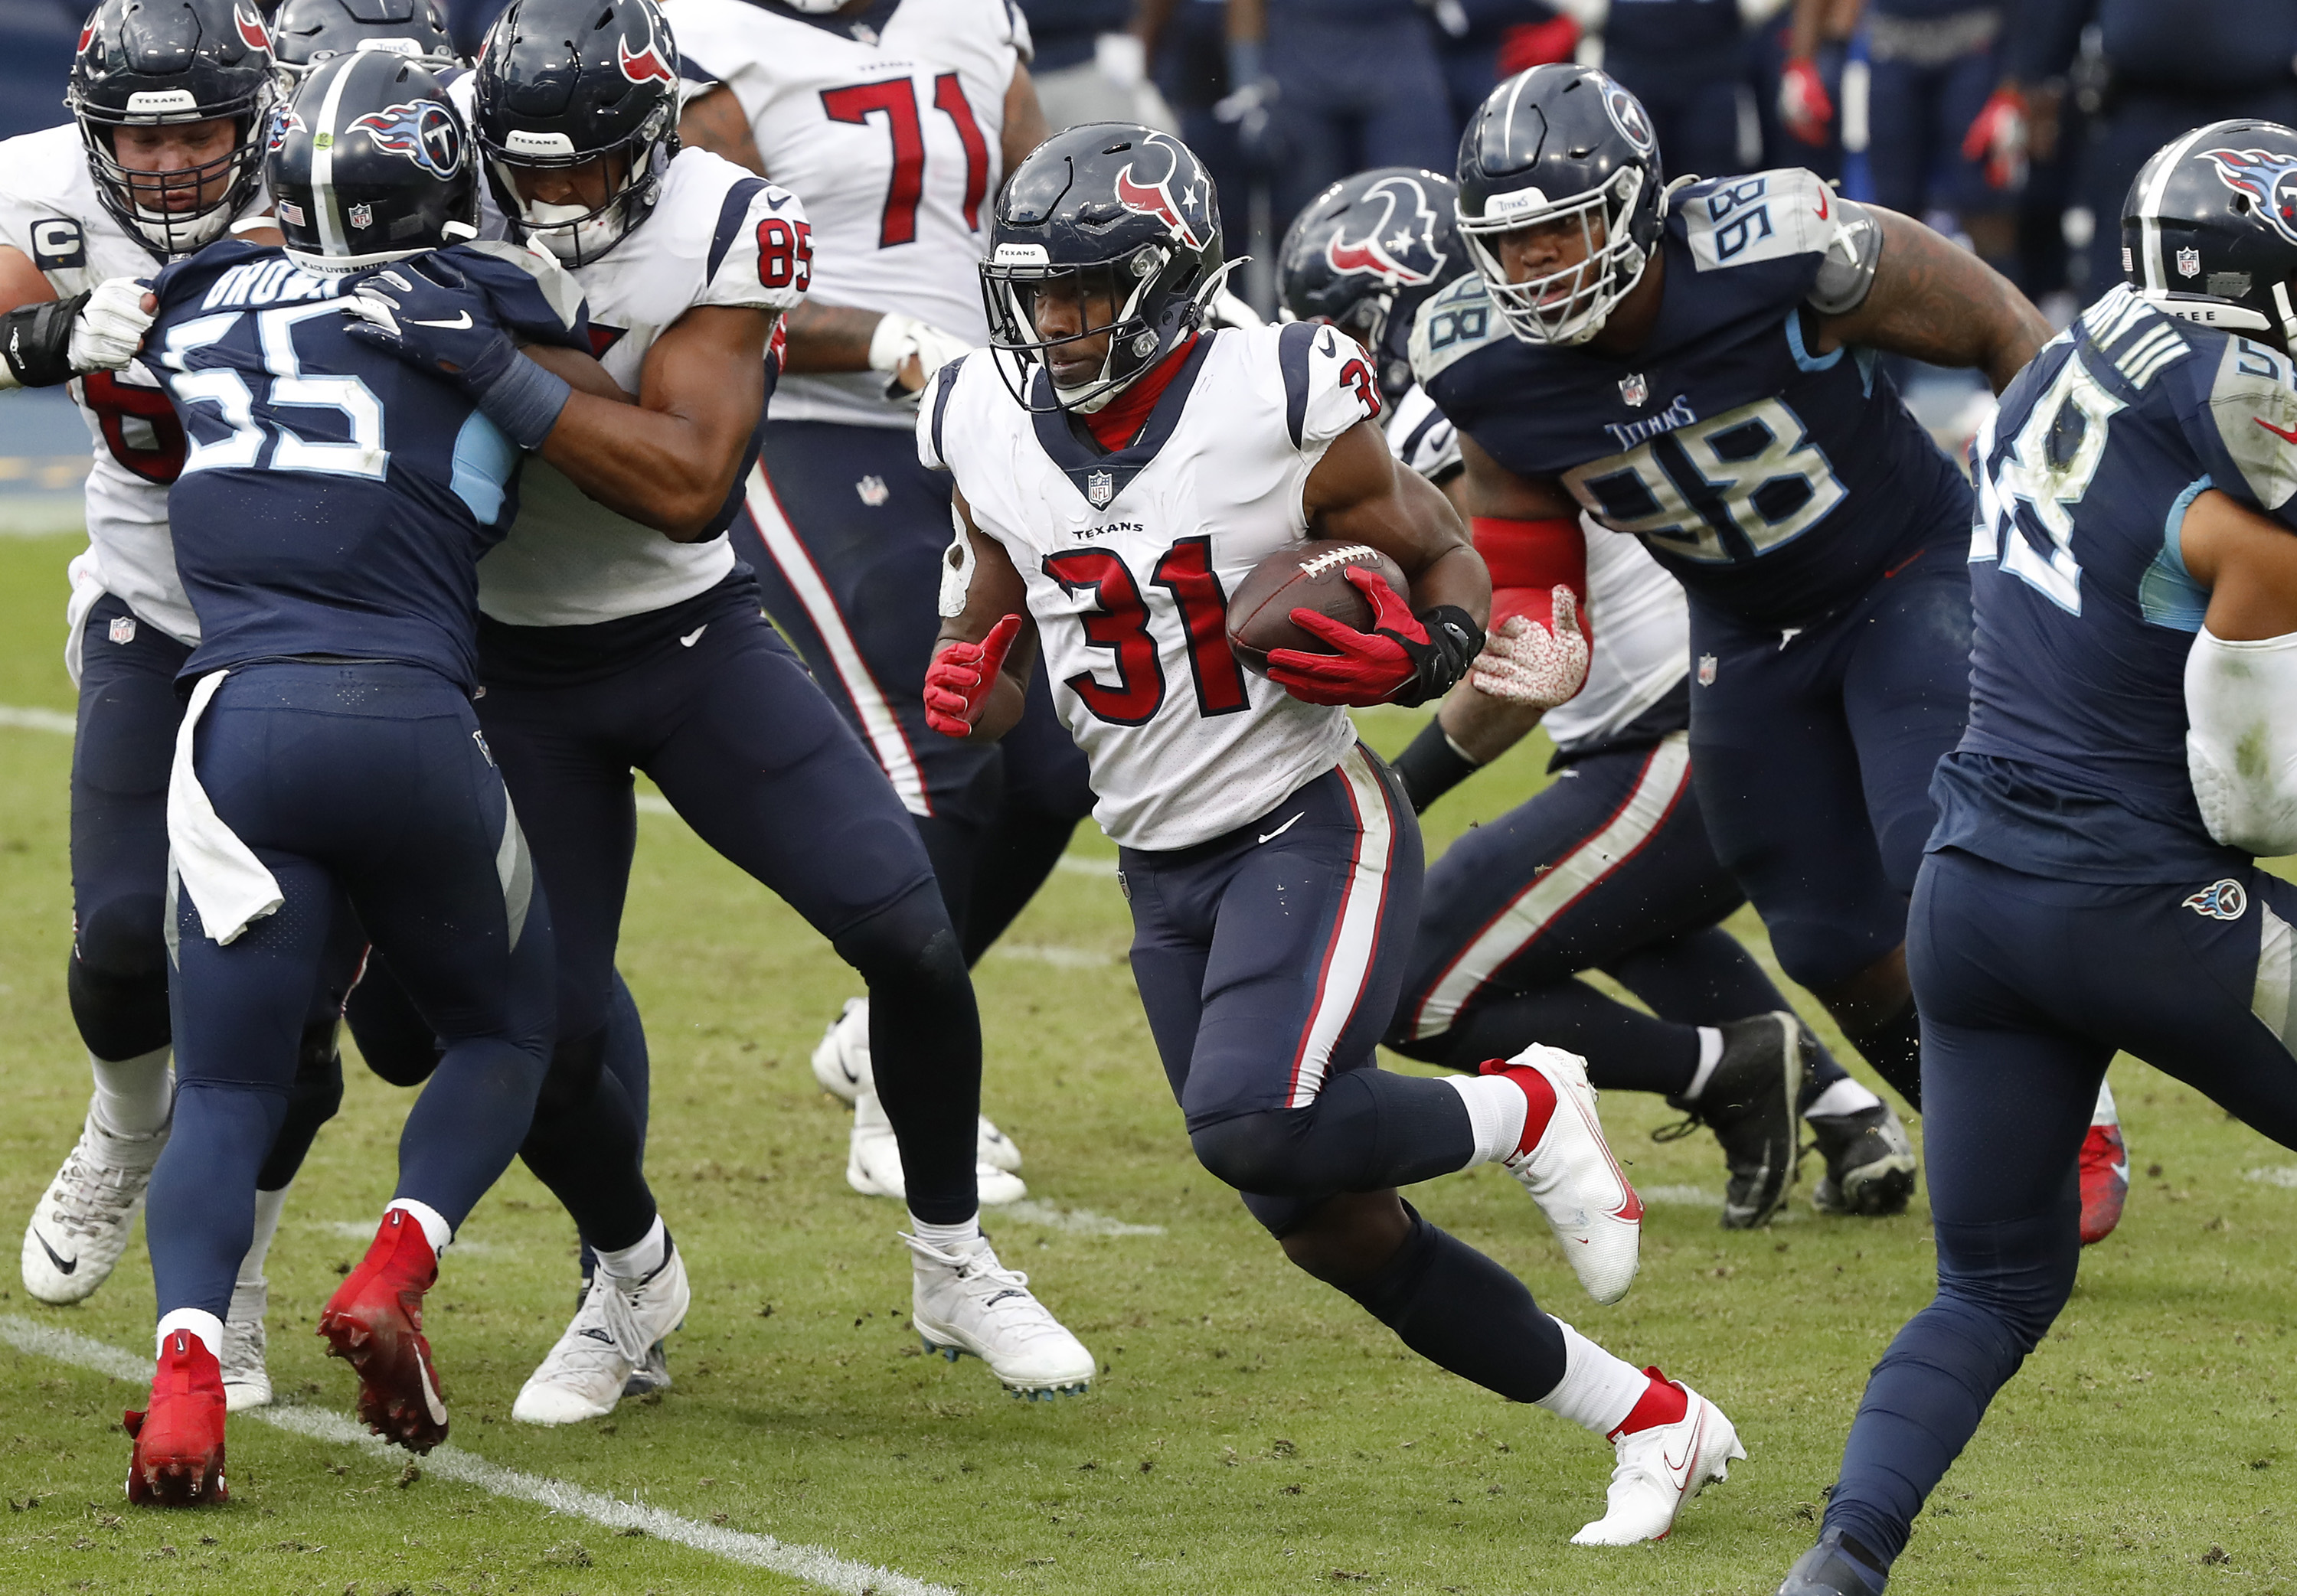 Running back David Johnson #31 of the Houston Texans runs with the ball in the second half of their game at Nissan Stadium on October 18, 2020 in Nashville, Tennessee.